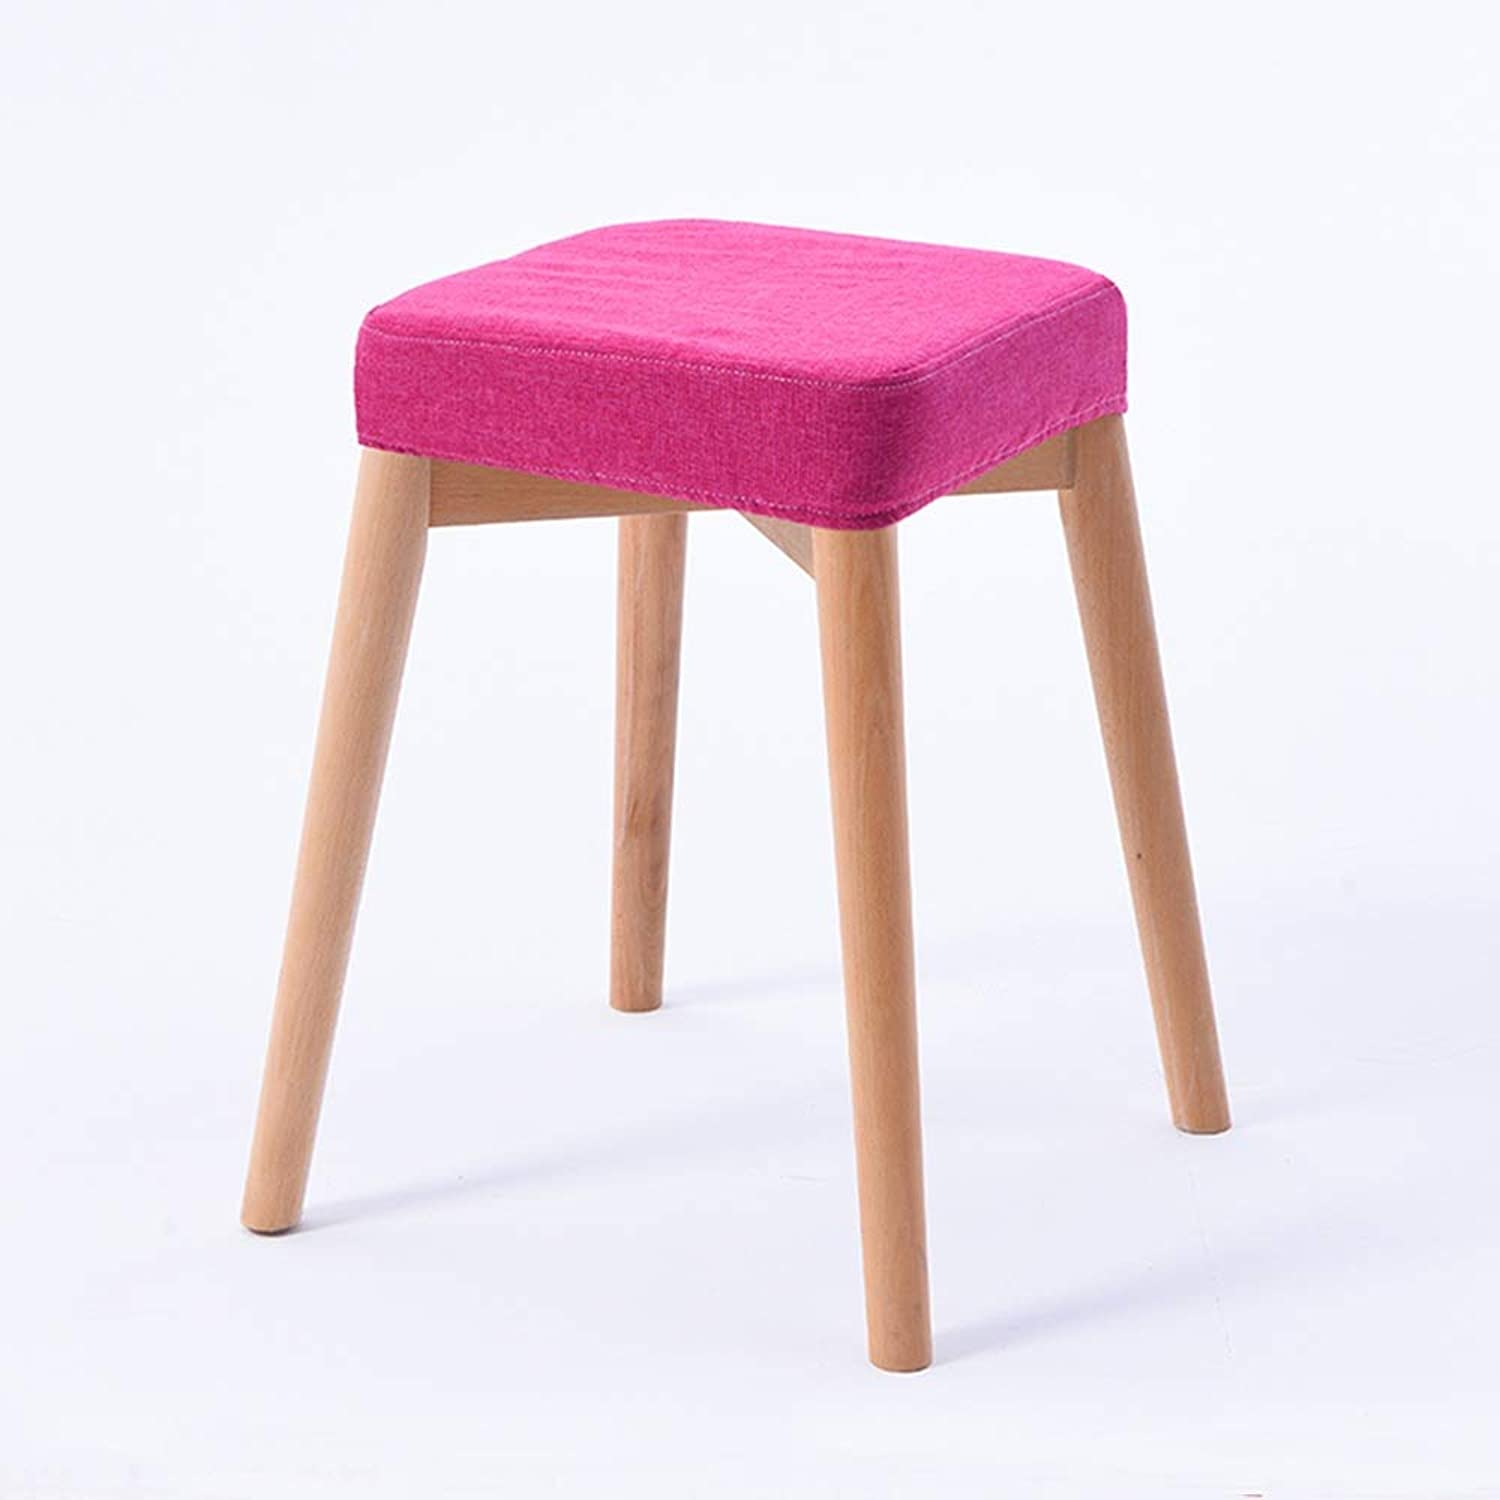 XSJJ Stool, Home Solid Wood Fabric Living Room Fabric Adult Sofa Restaurant Stool Small Stool 4 color Optional Wooden Bench (color   Wood pink, Size   31  31  46cm)